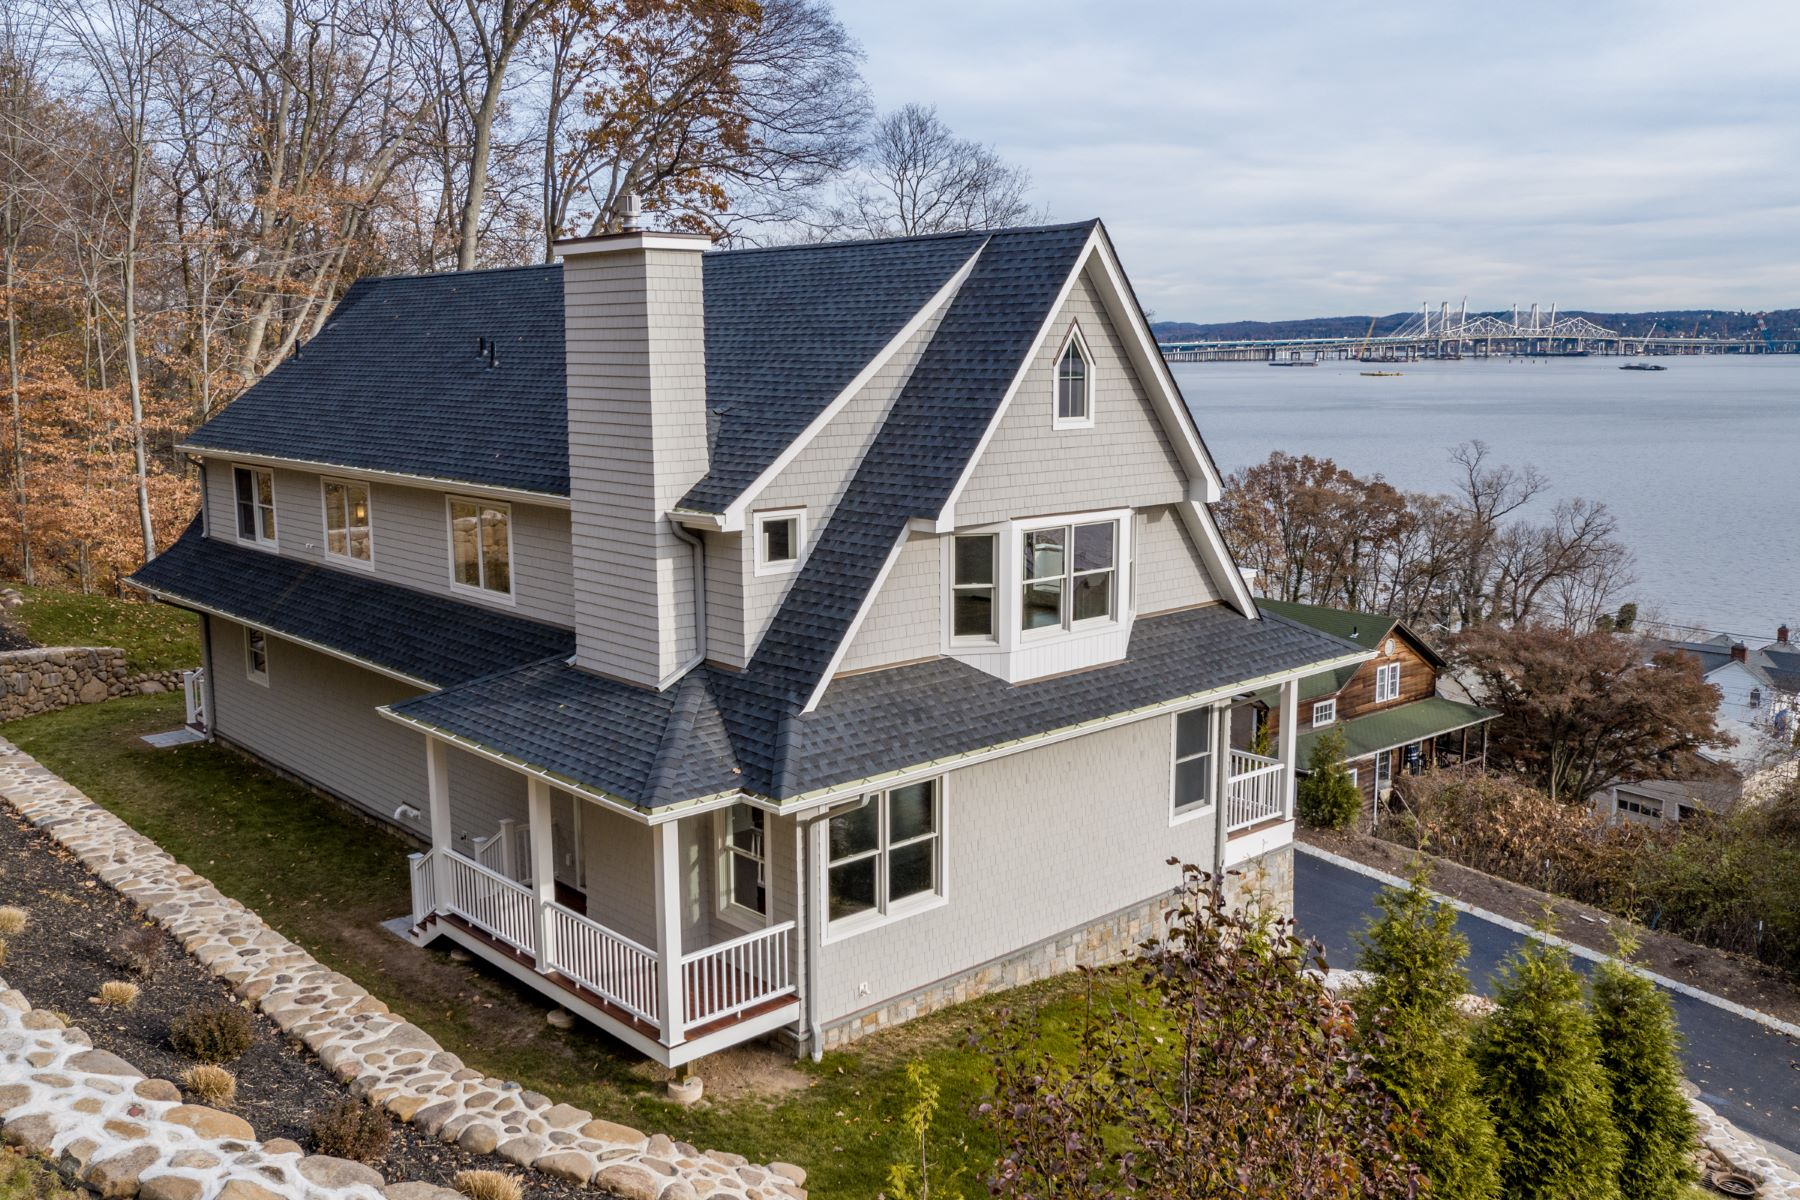 Single Family Home for Sale at Panoramic Hudson River Views - New Custom Colonial 28 Stevenson Street Piermont, New York 10968 United States